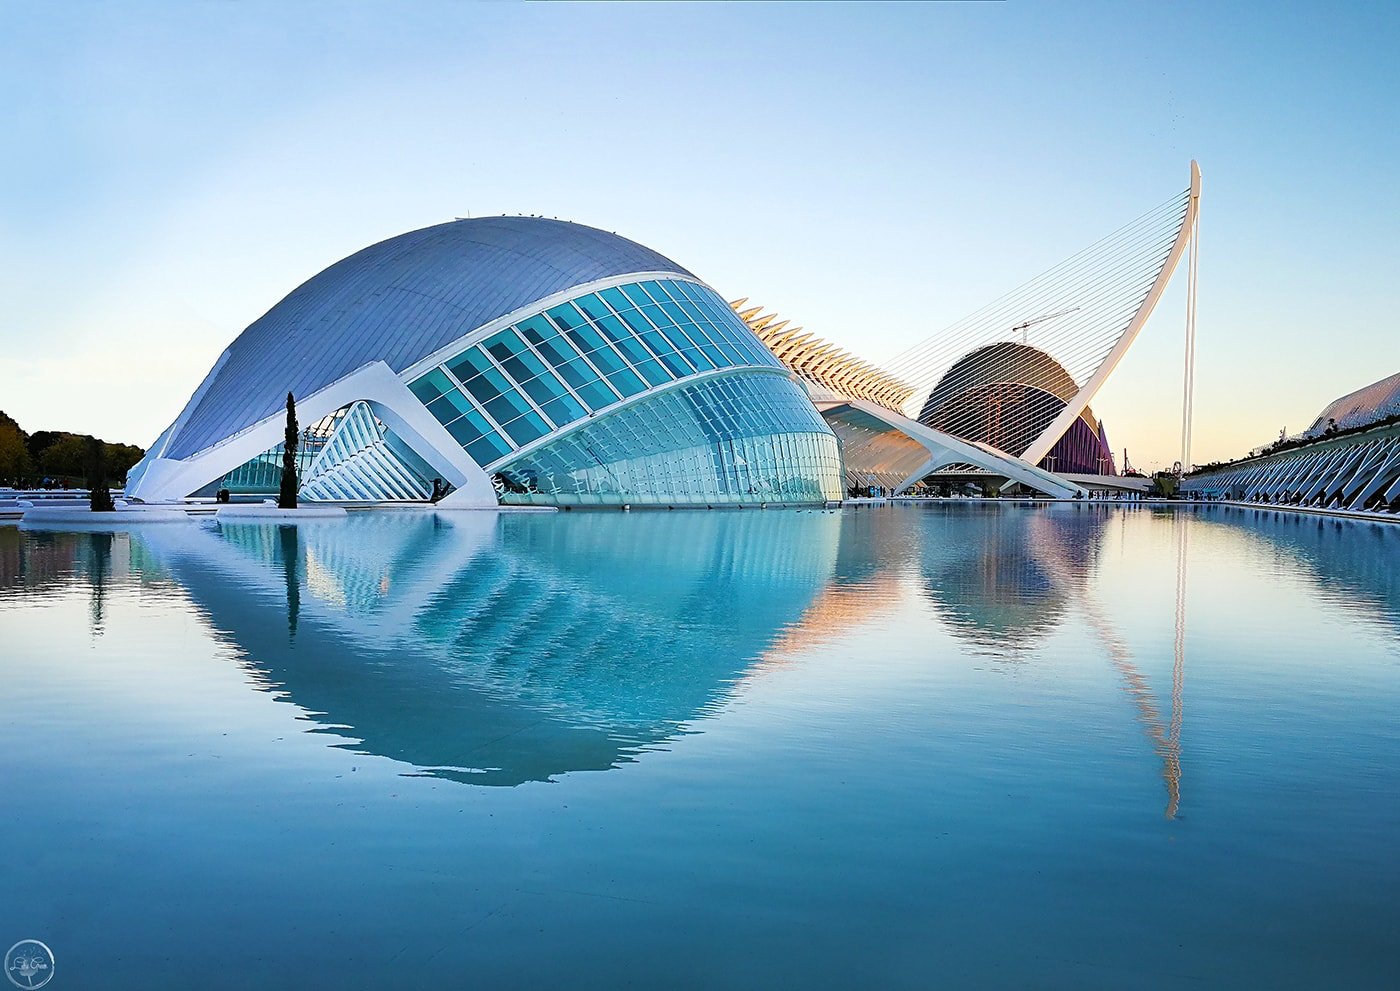 City of Arts and Sciences ~ Valencia